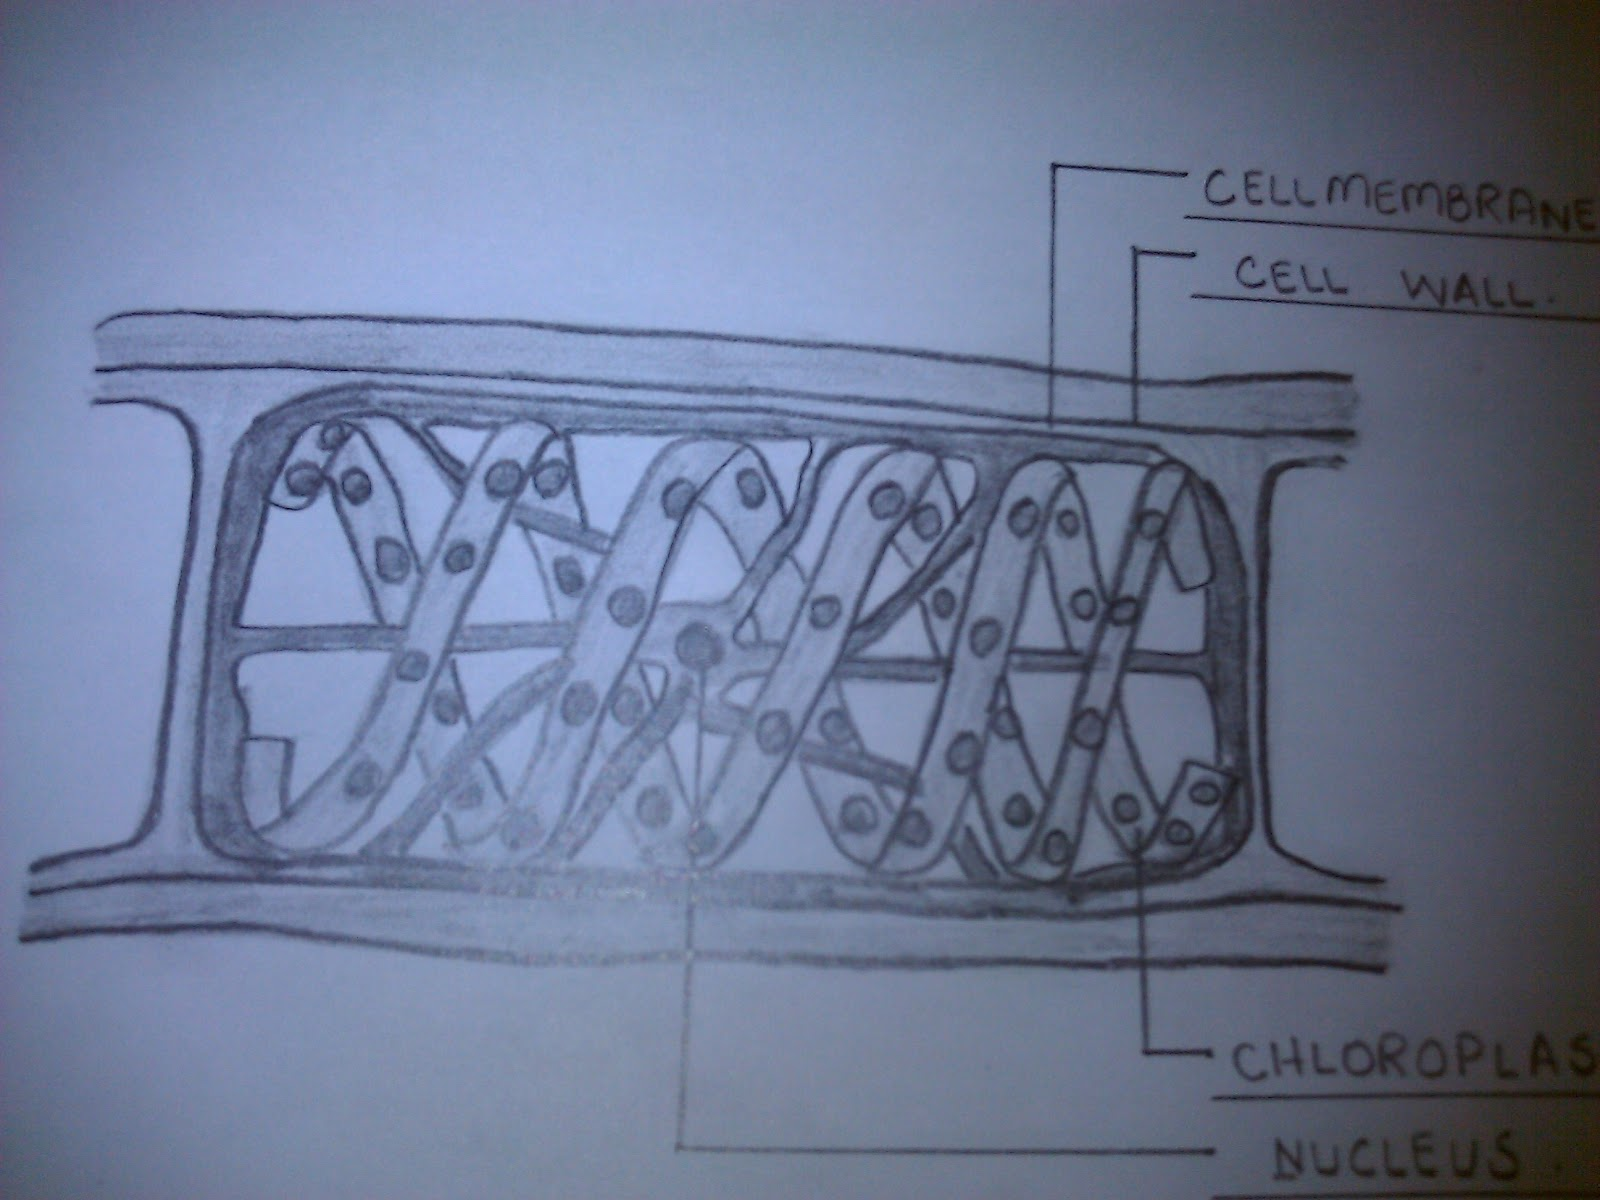 Isolated system study of spirogyra spirogyra diagram with label lings nucleus chloroplast cell wall and cell membrane ccuart Gallery